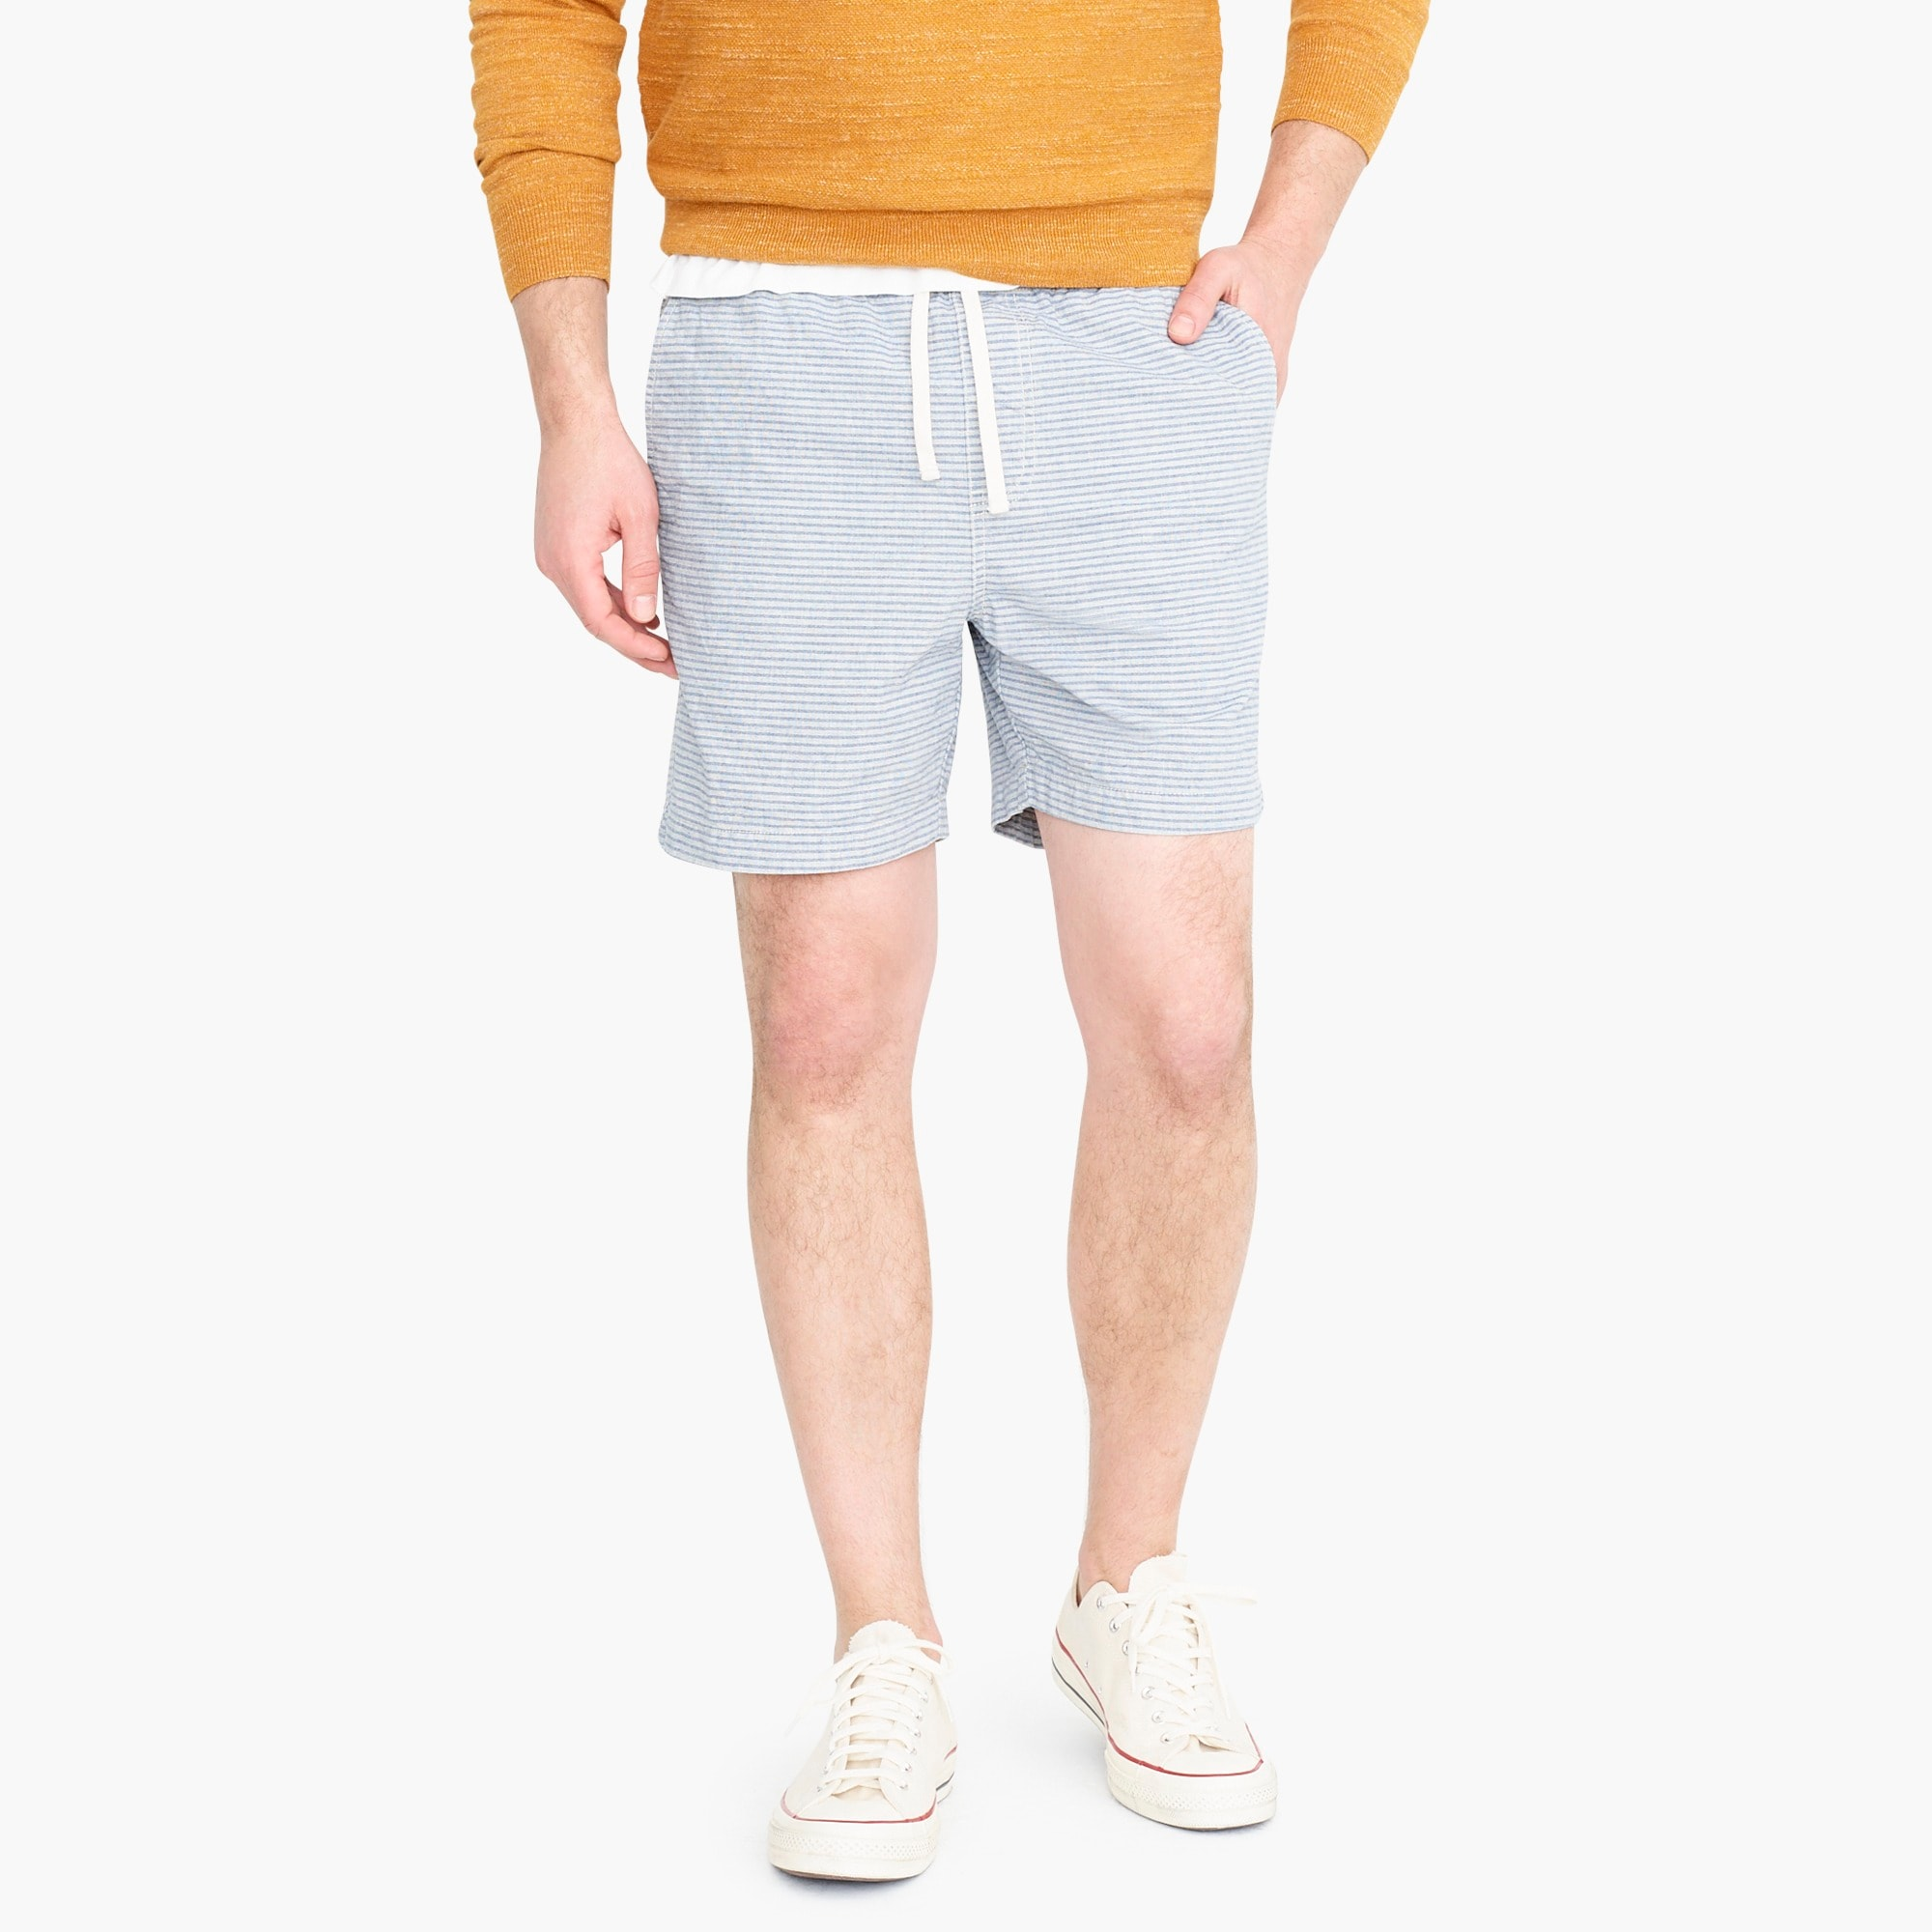 mens Dock shorts in indigo stripe dobby